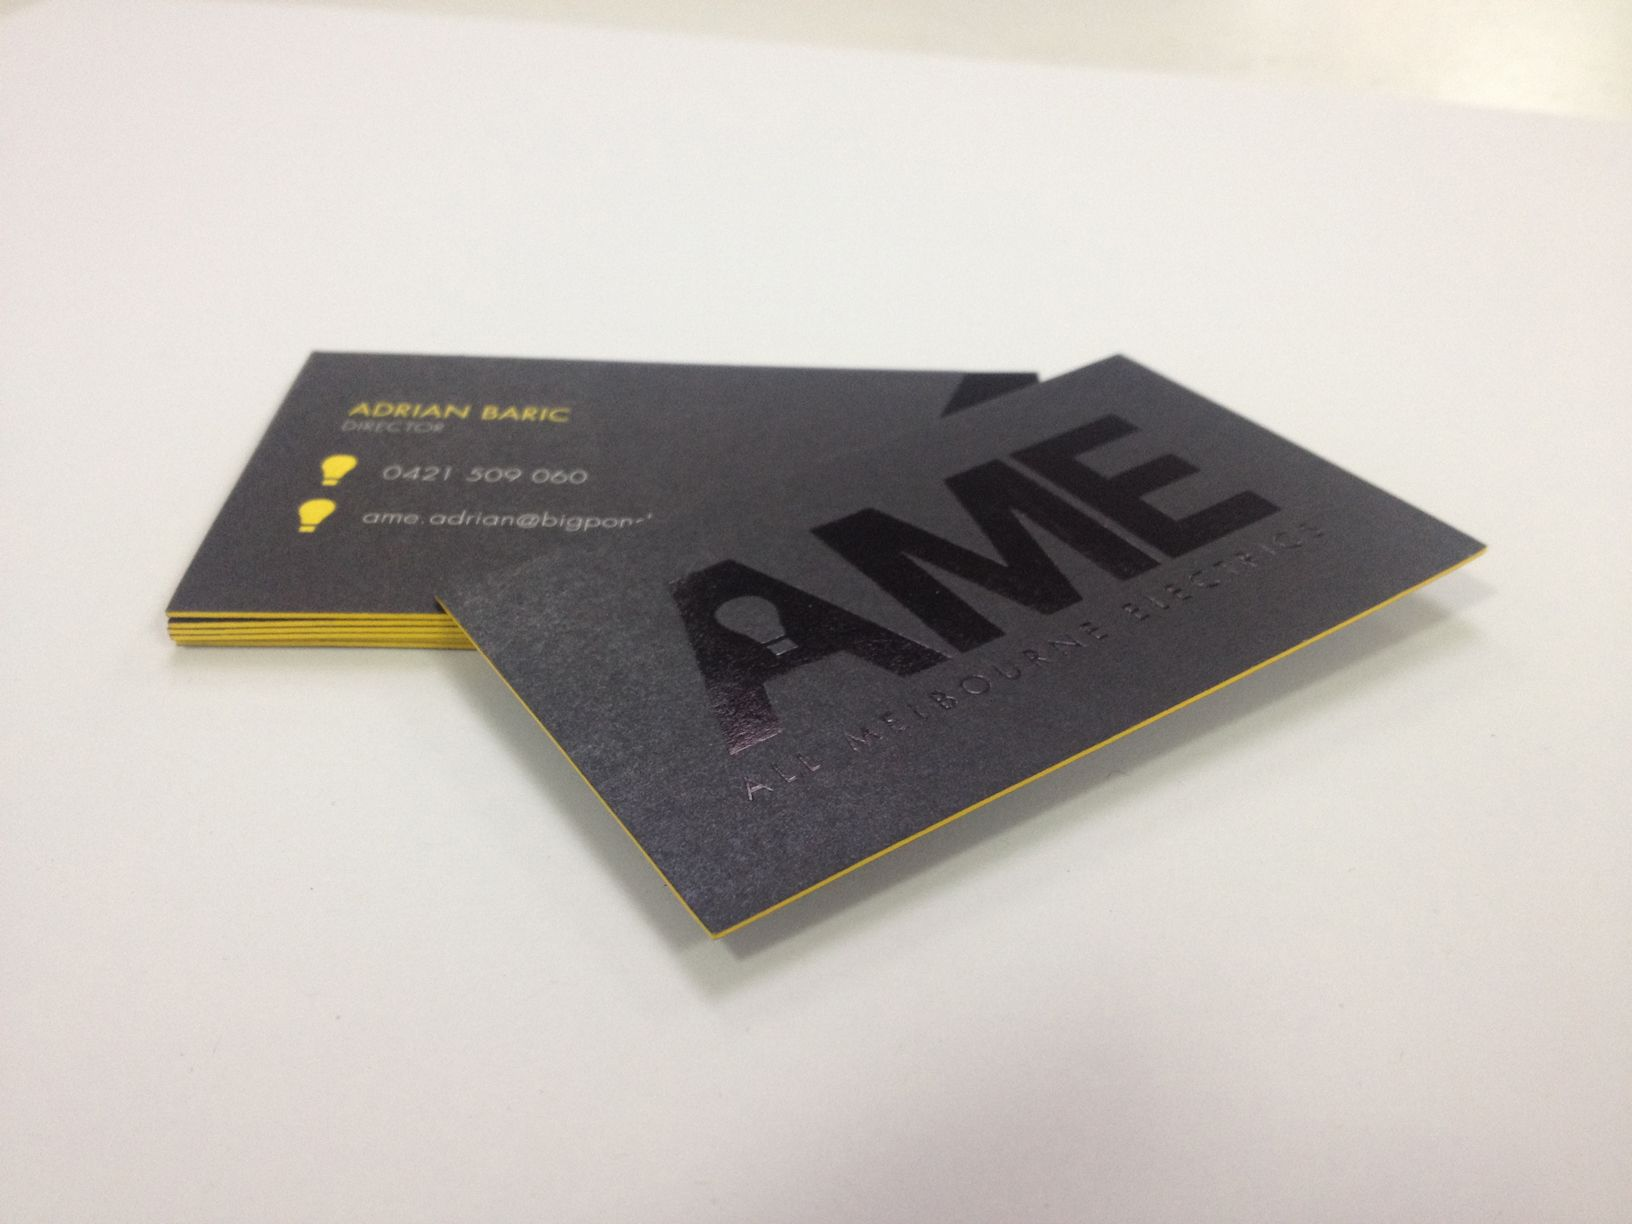 Ame business cards printed recently by snap printing geelong love ame business cards printed recently by snap printing geelong love the yellow detail reheart Images